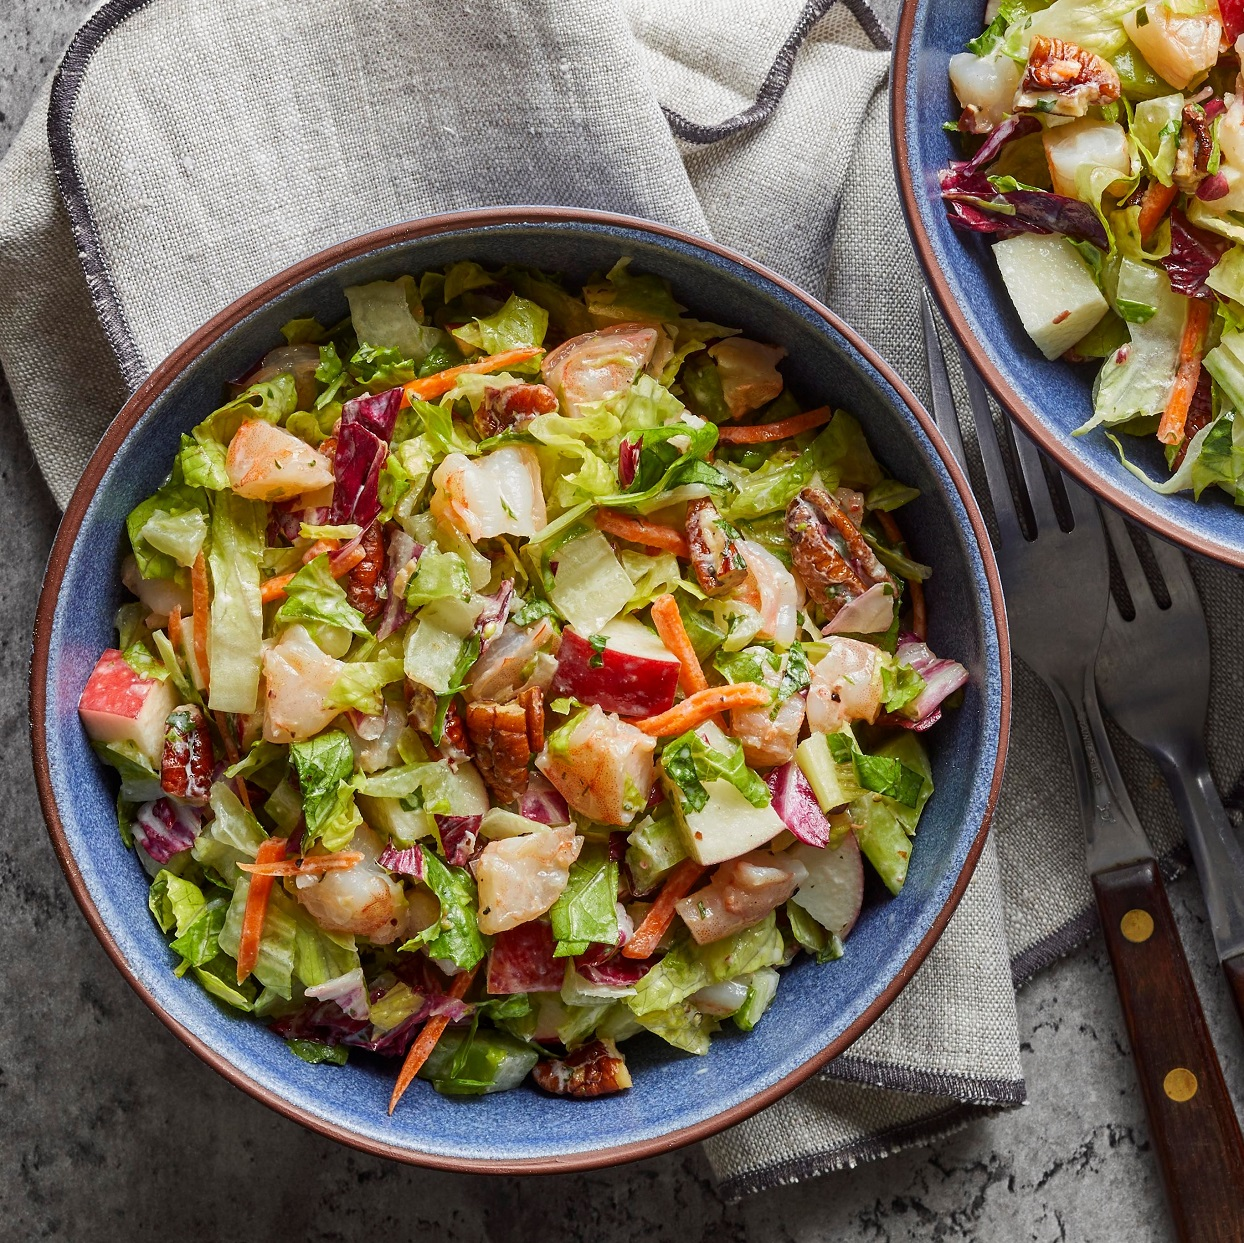 Sweet and crunchy apples and celery combine with savory shrimp and nutty pecans in this easy, colorful dinner salad. Source: EatingWell.com, January 2020